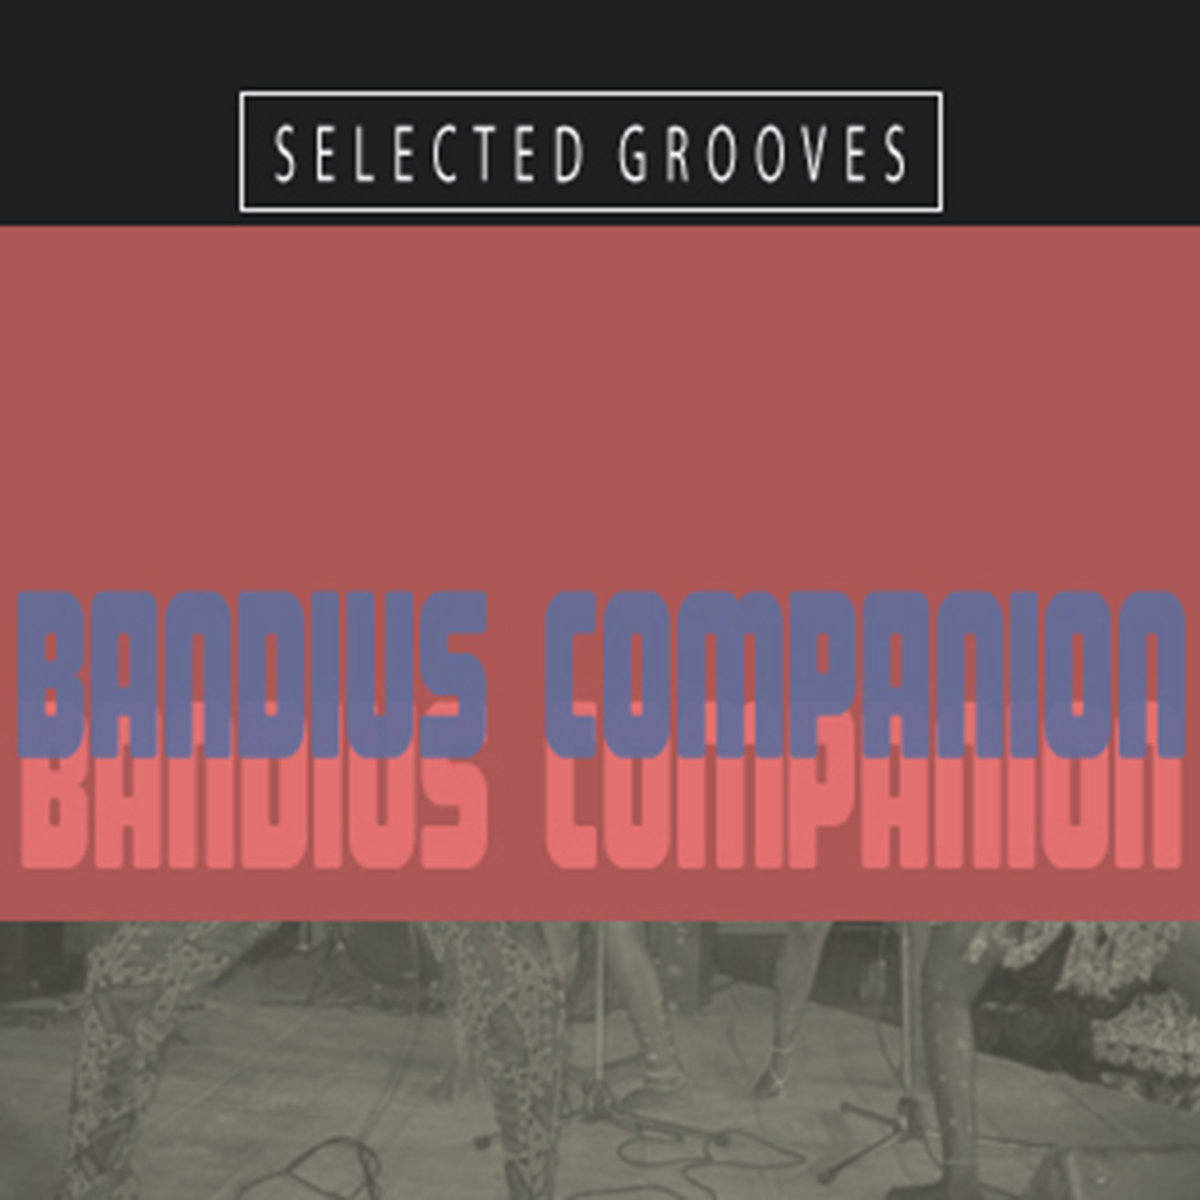 Bandius Companion - Selected Grooves (SOLD OUT)